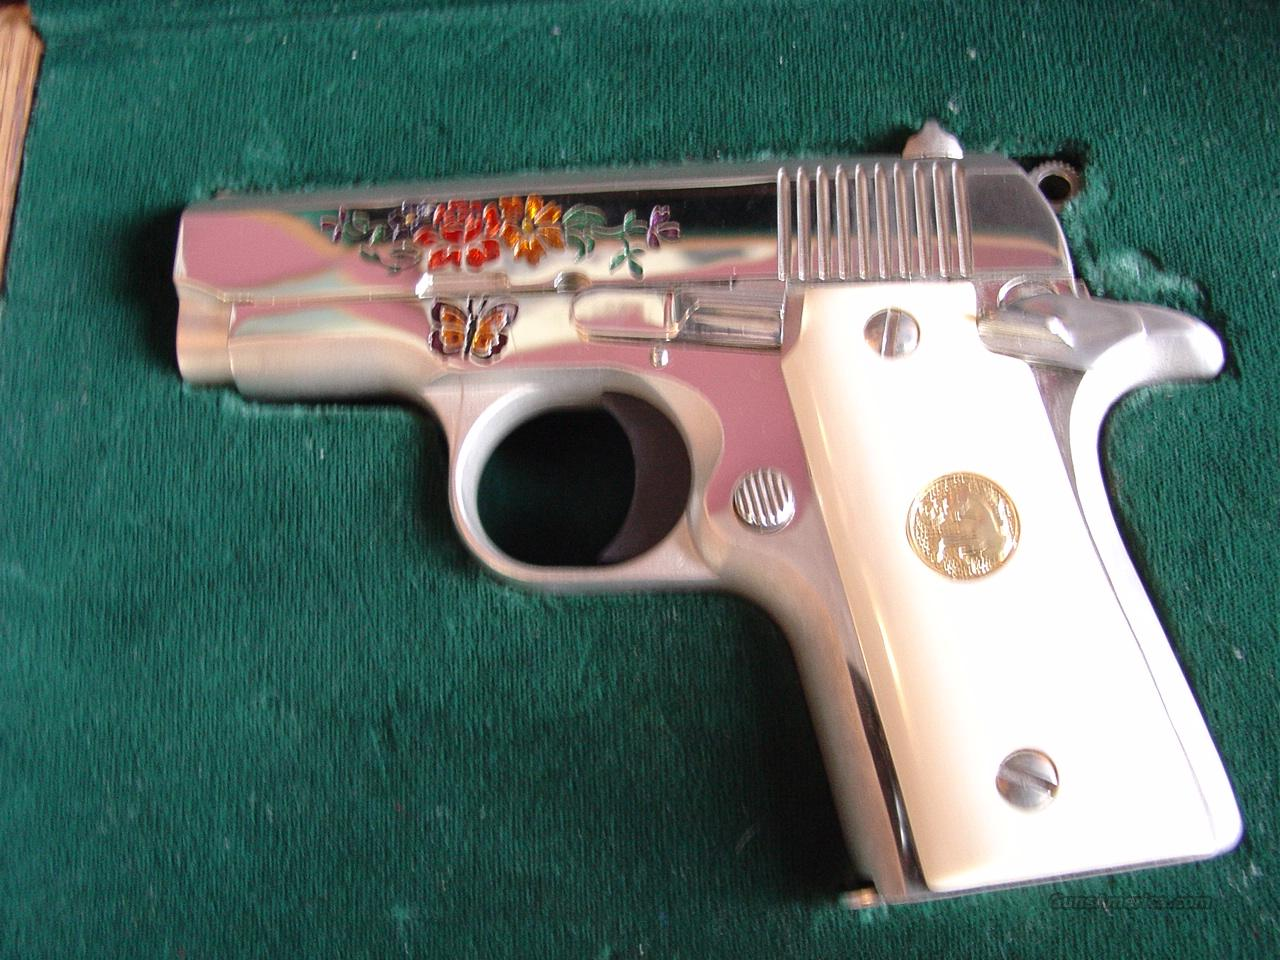 Colt Mustang,380,#48 0f 100,lady Colt engraved deep,with enamel flowes & butterfly & scroll on the other side,high polished stainless,& satin stainless,faux ivory grips,in original Colt fitted prres case. a super beauty & unfired  Guns > Pistols > Colt Automatic Pistols (.25, .32, & .380 cal)